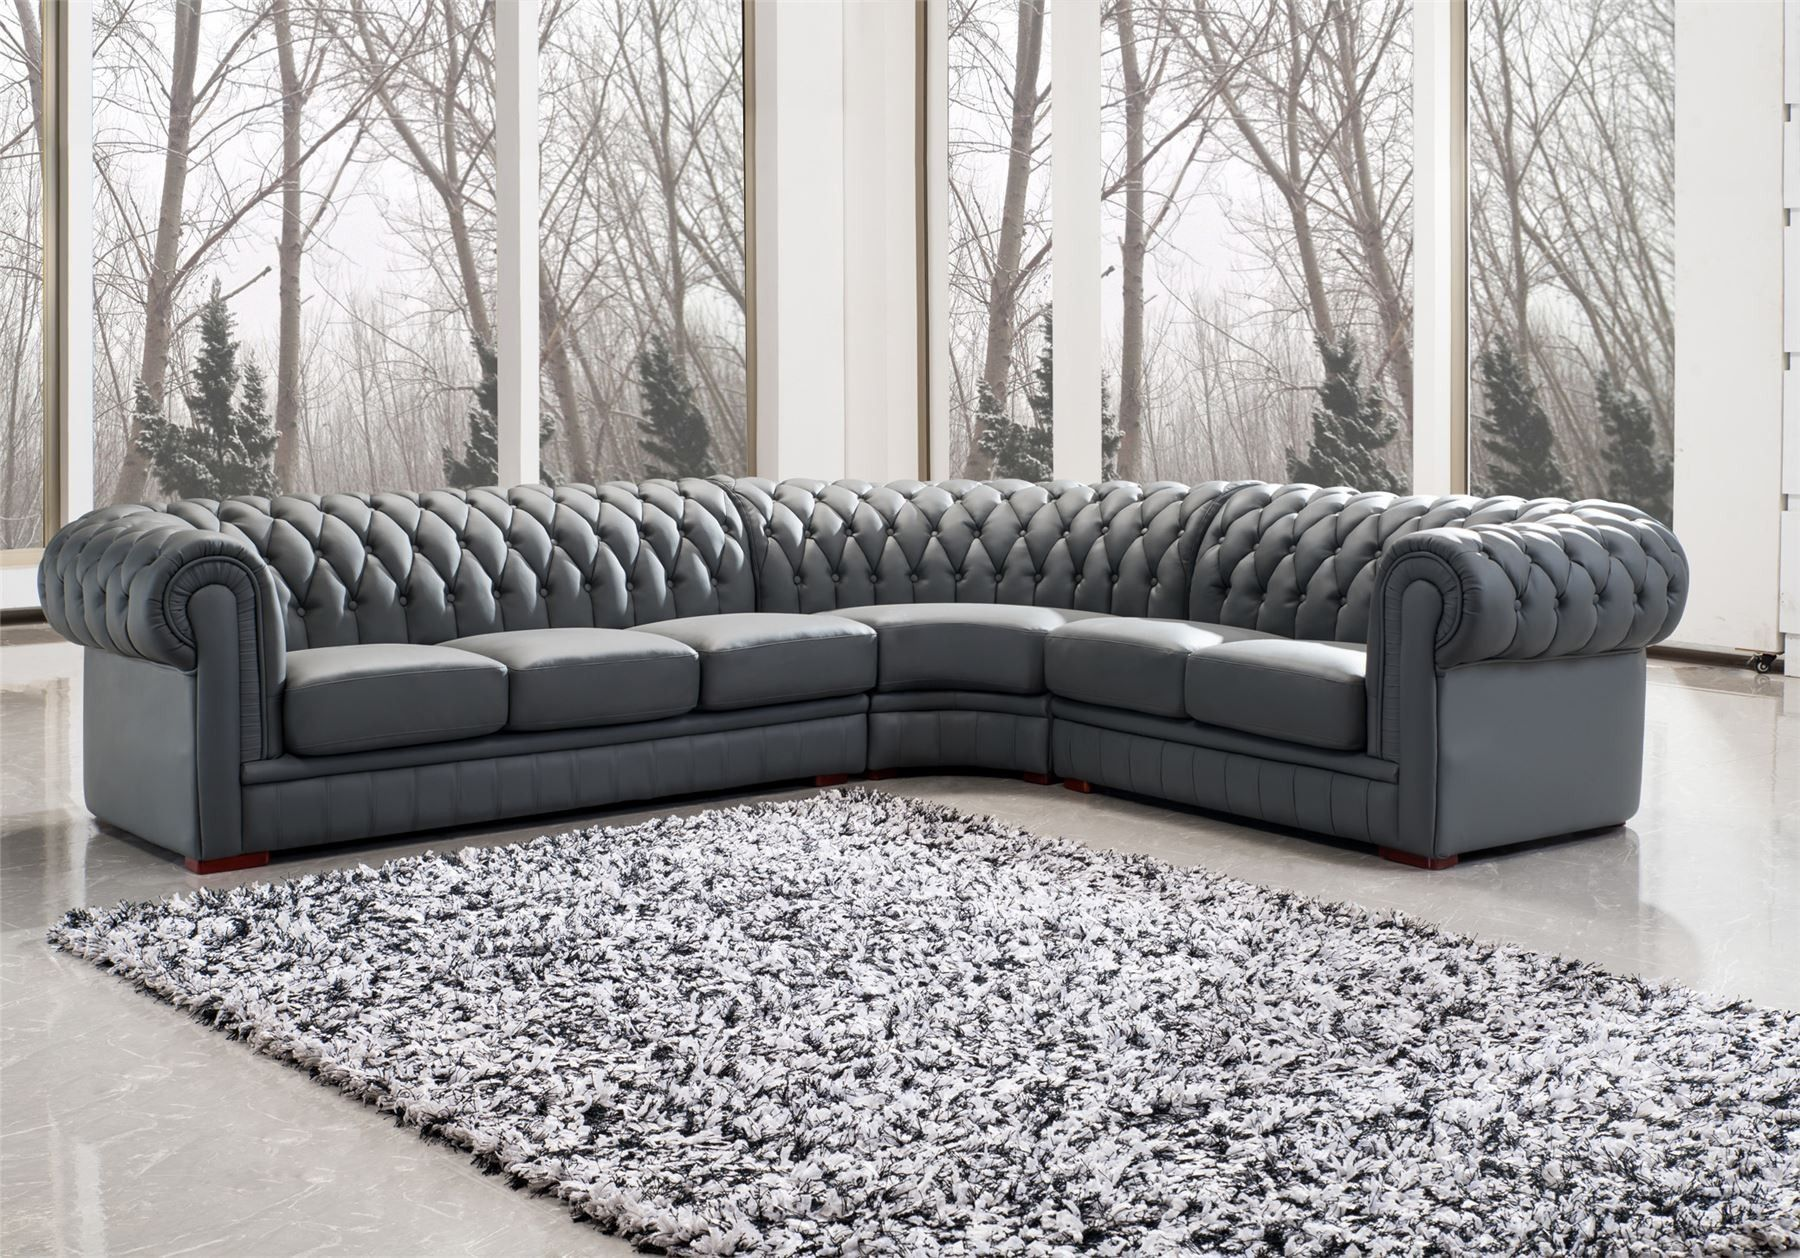 appealing grey upholstered sectional leather chesterfield sofa in rh pinterest com